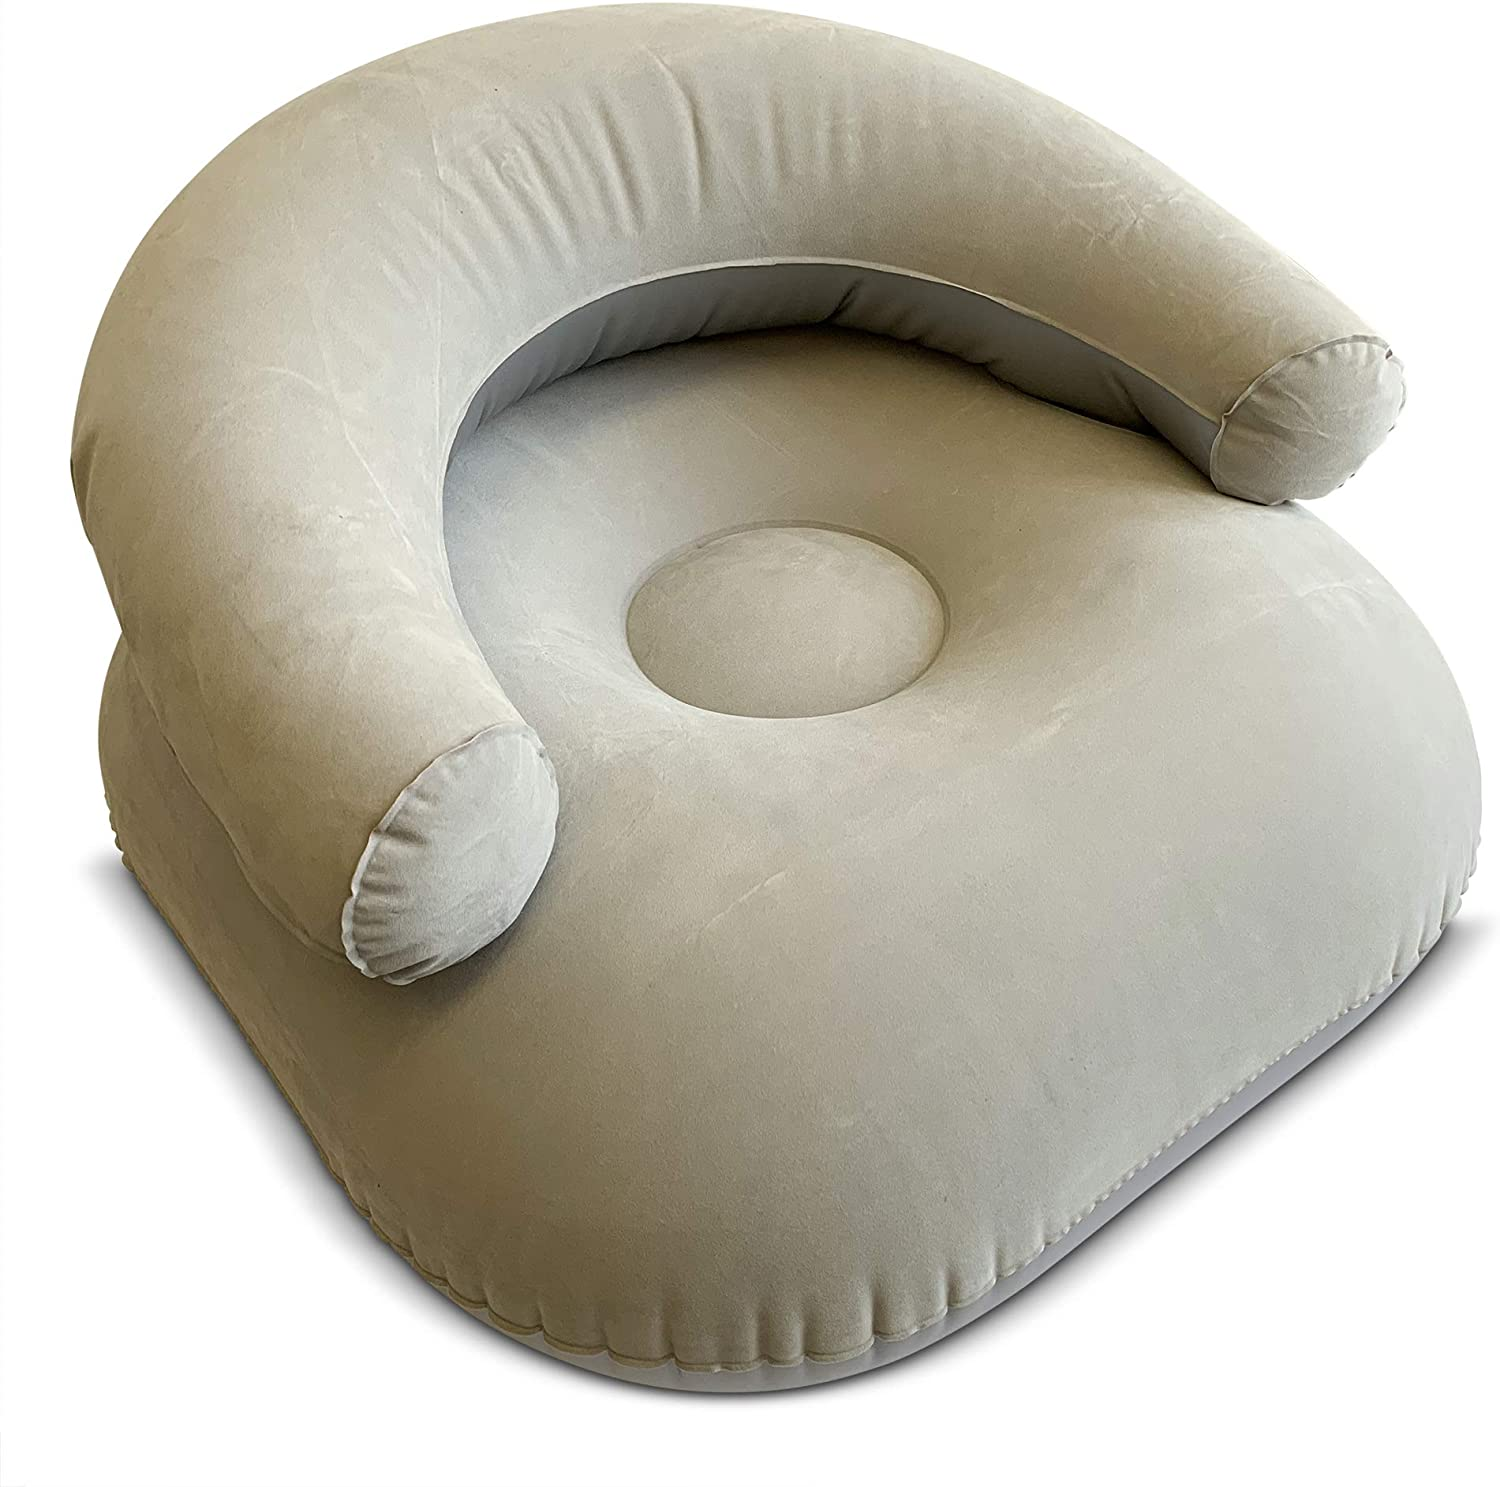 Comfort Axis Inflatable Camp Lounger Sofa for Kids Gray 23.5